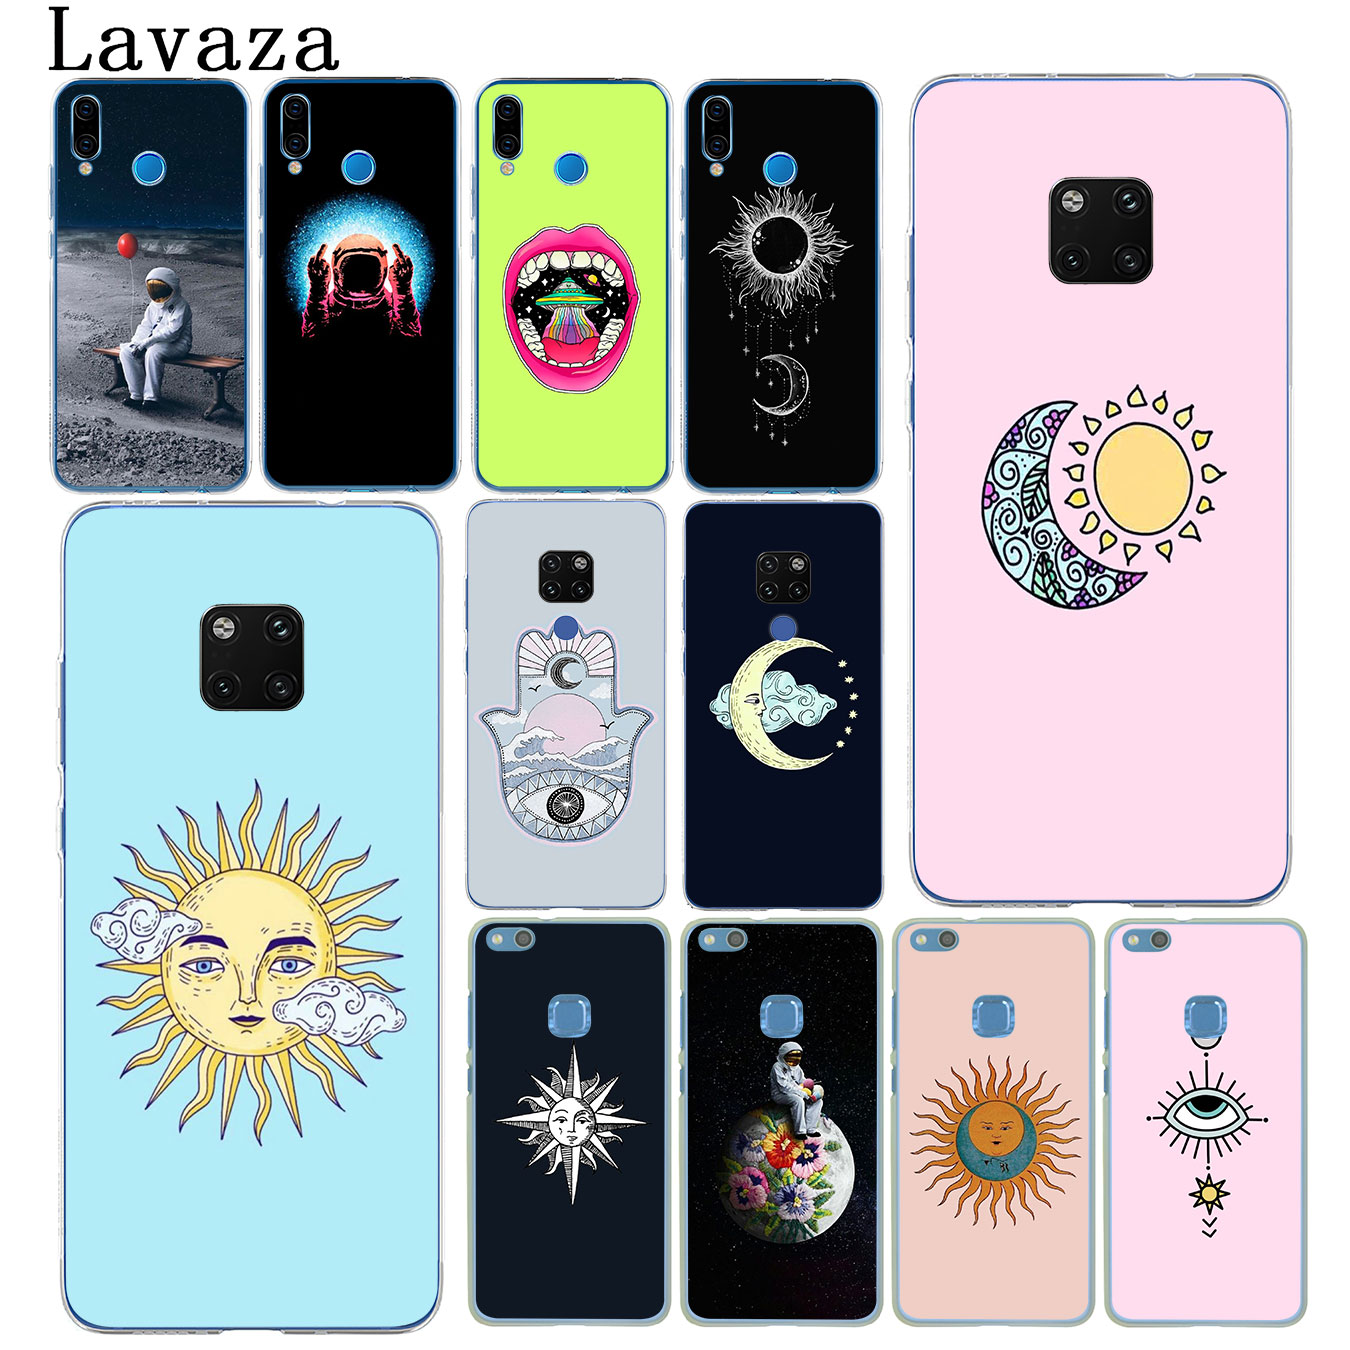 Fast Deliver Lavaza Sun And Moon Wiccan Hard Phone Case For Huawei Nova 4 3 3i 2i Lite 2017 Cover For Huawei Mate 20 10 P20 Pro Lite Cases Pleasant In After-Taste Phone Bags & Cases Half-wrapped Case